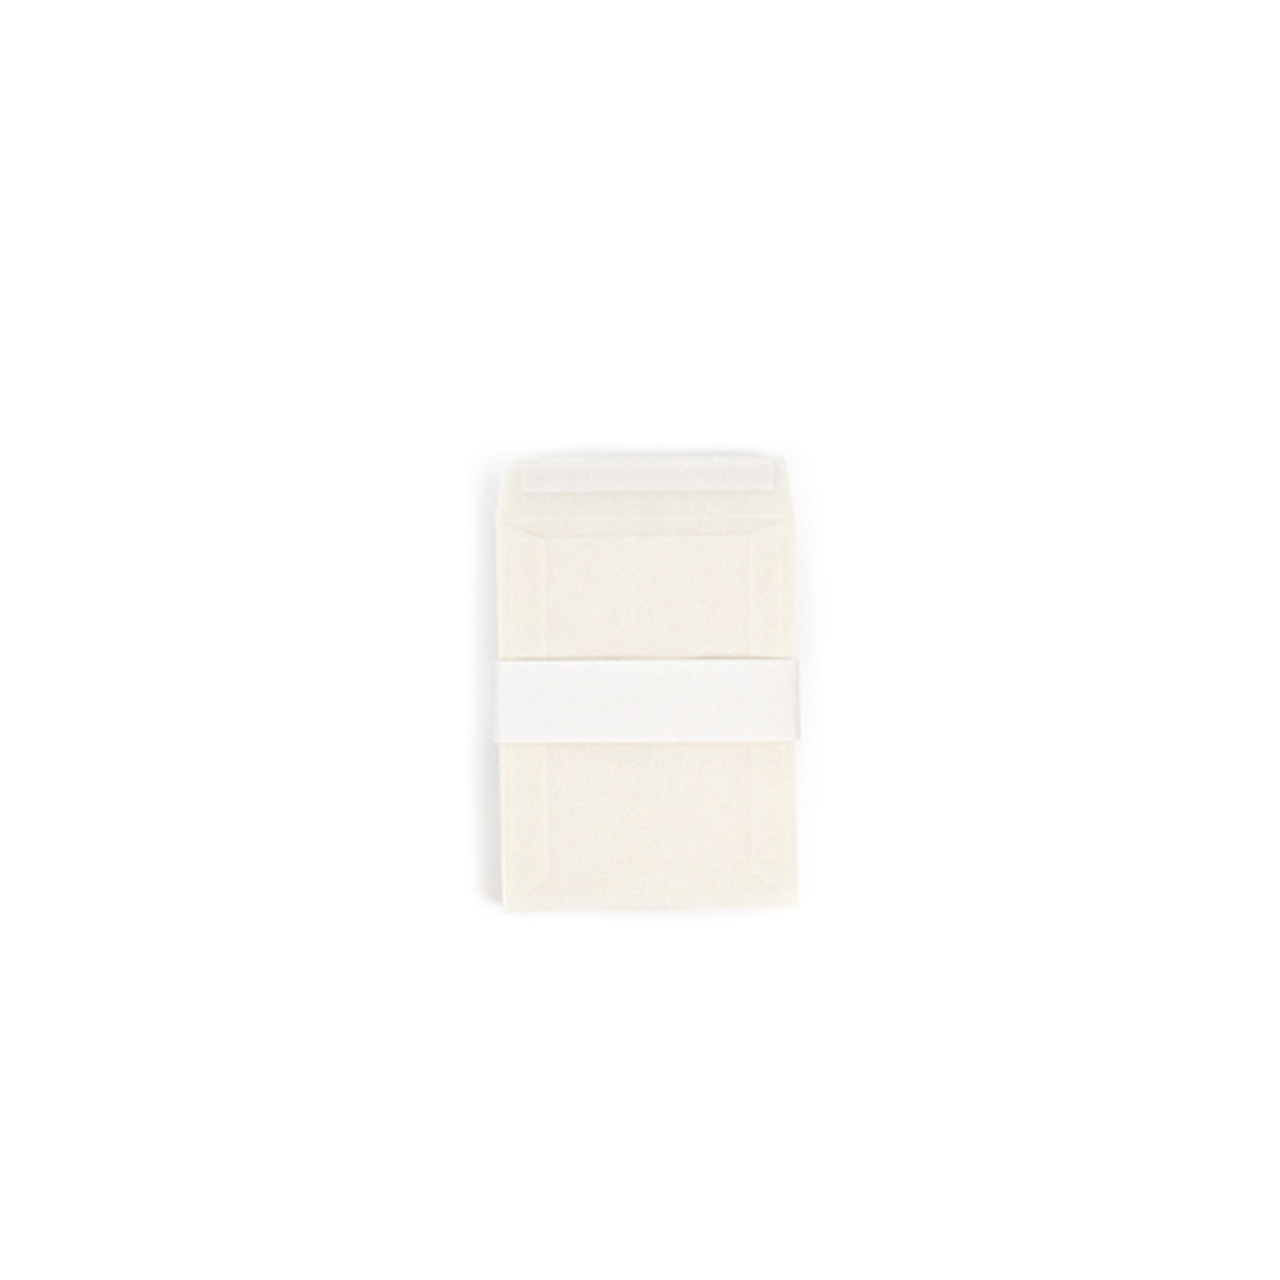 Confetti Favours Seed Melts Glassine Pockets Open Top 150 x 65mm Pack of 100